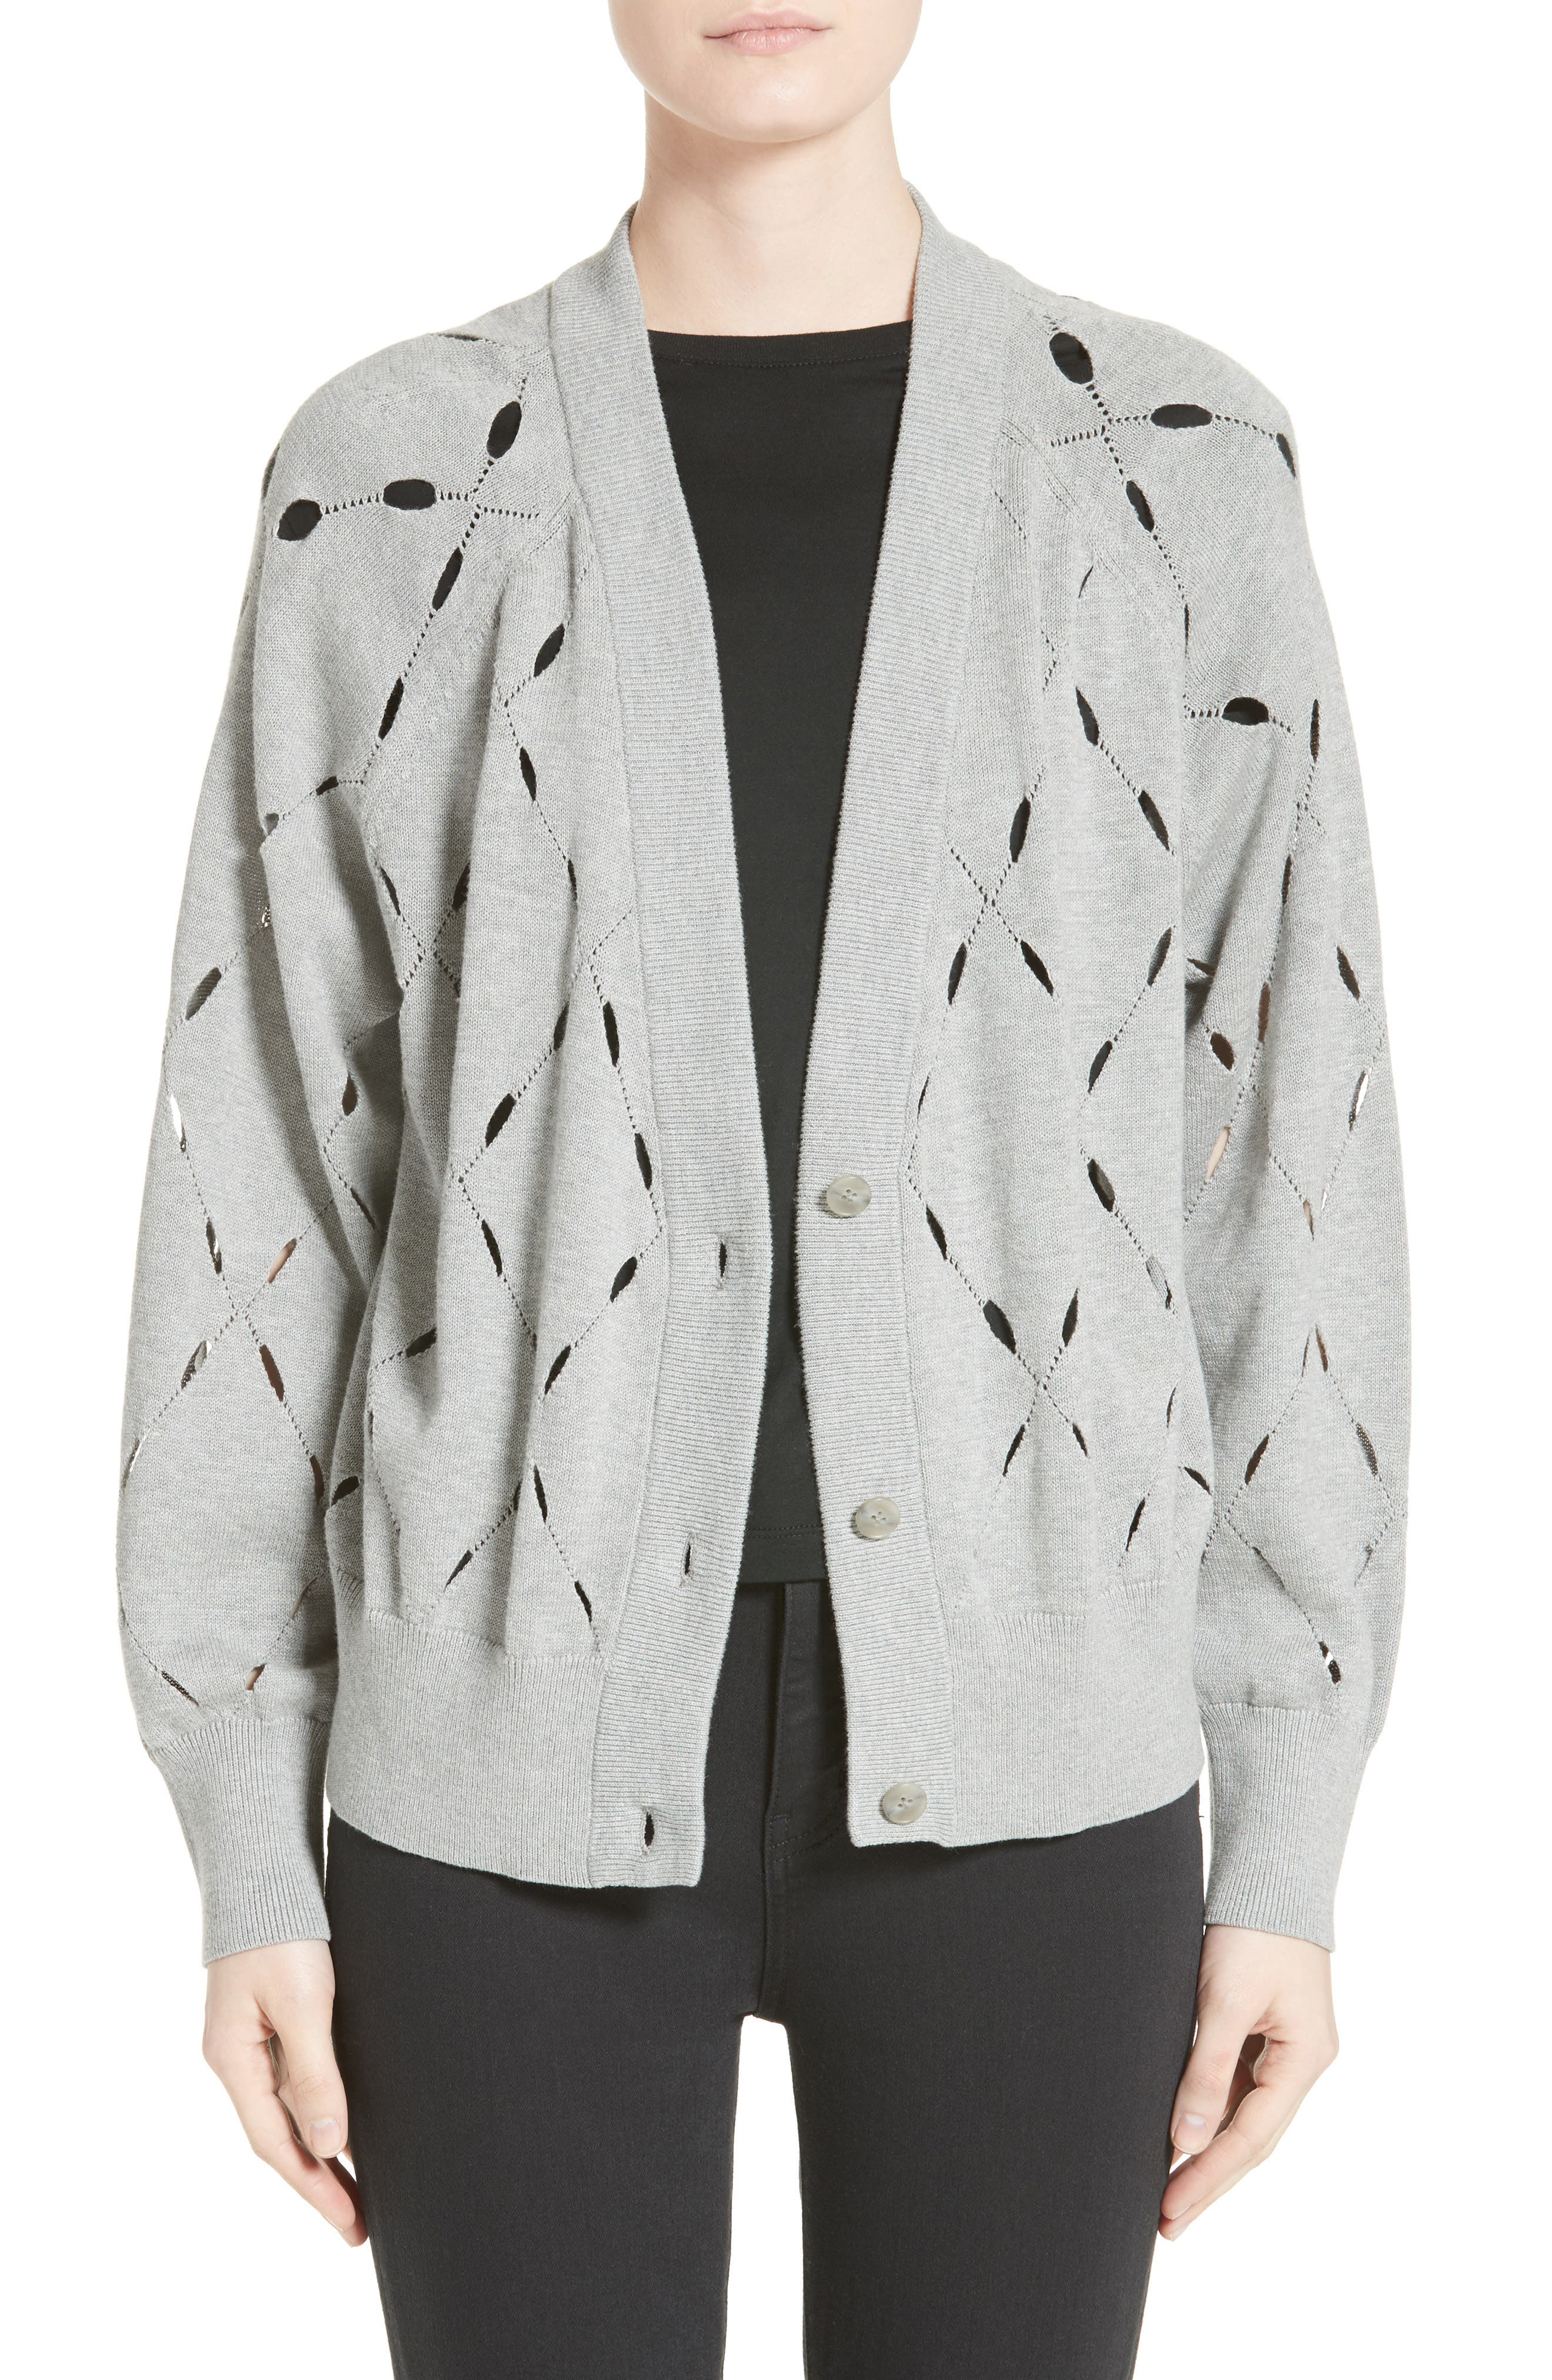 T by Alexander Wang Argyle Stitch Cardigan